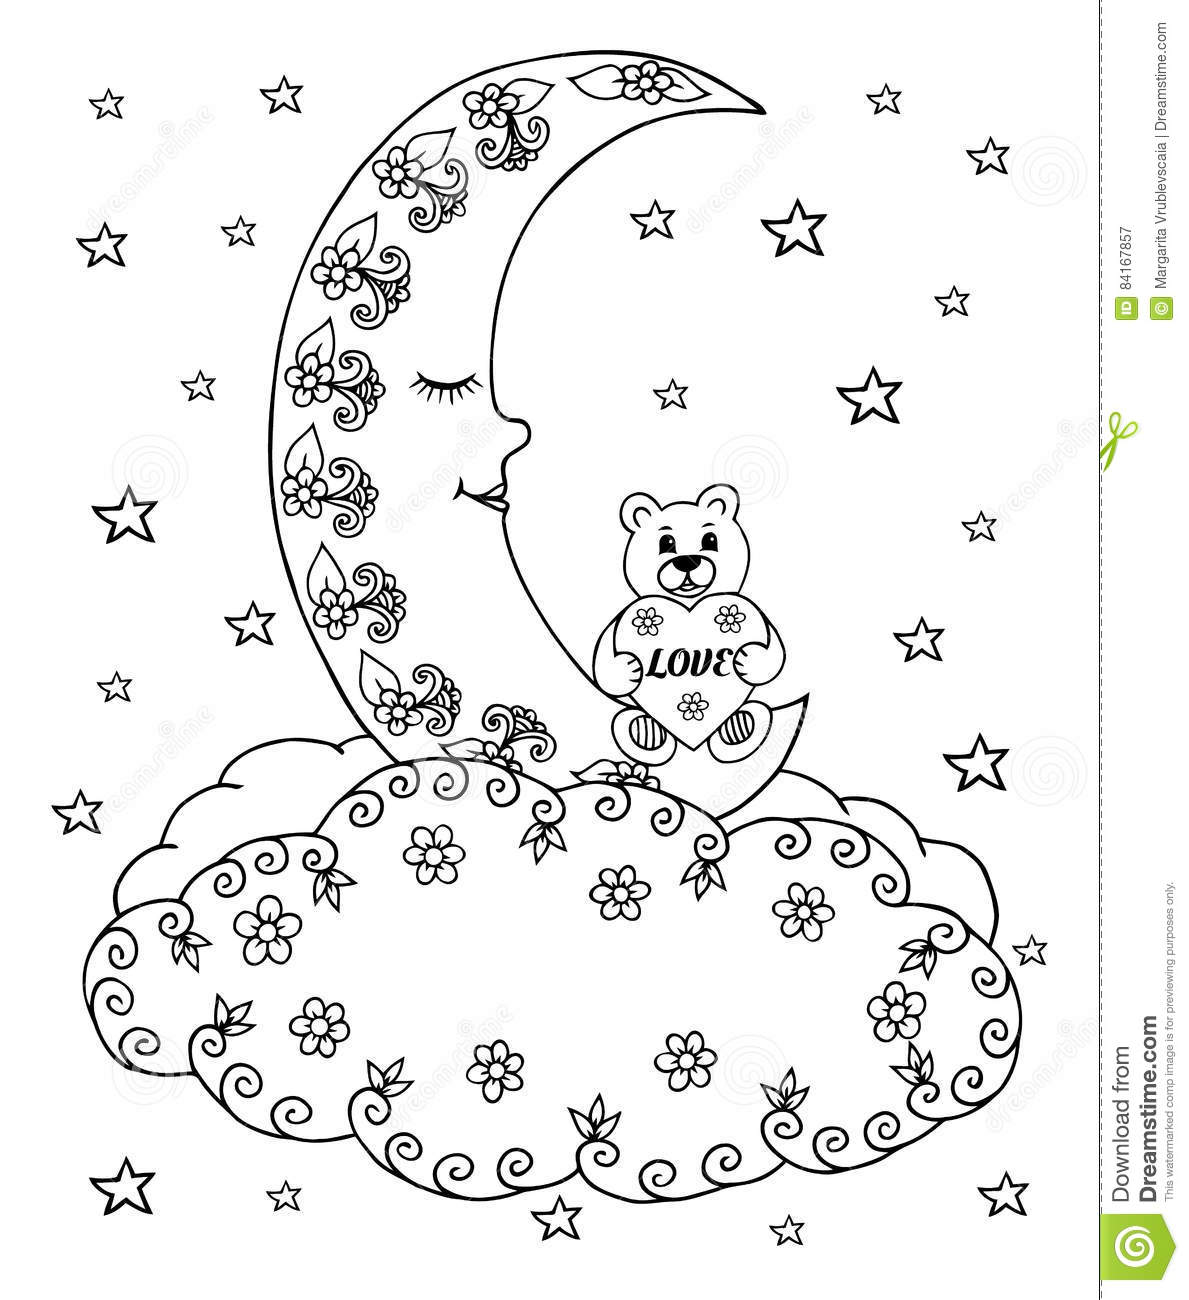 Vector Illustration Zentangl A Teddy Bear With A Heart On The Moon Among The Clouds And Stars